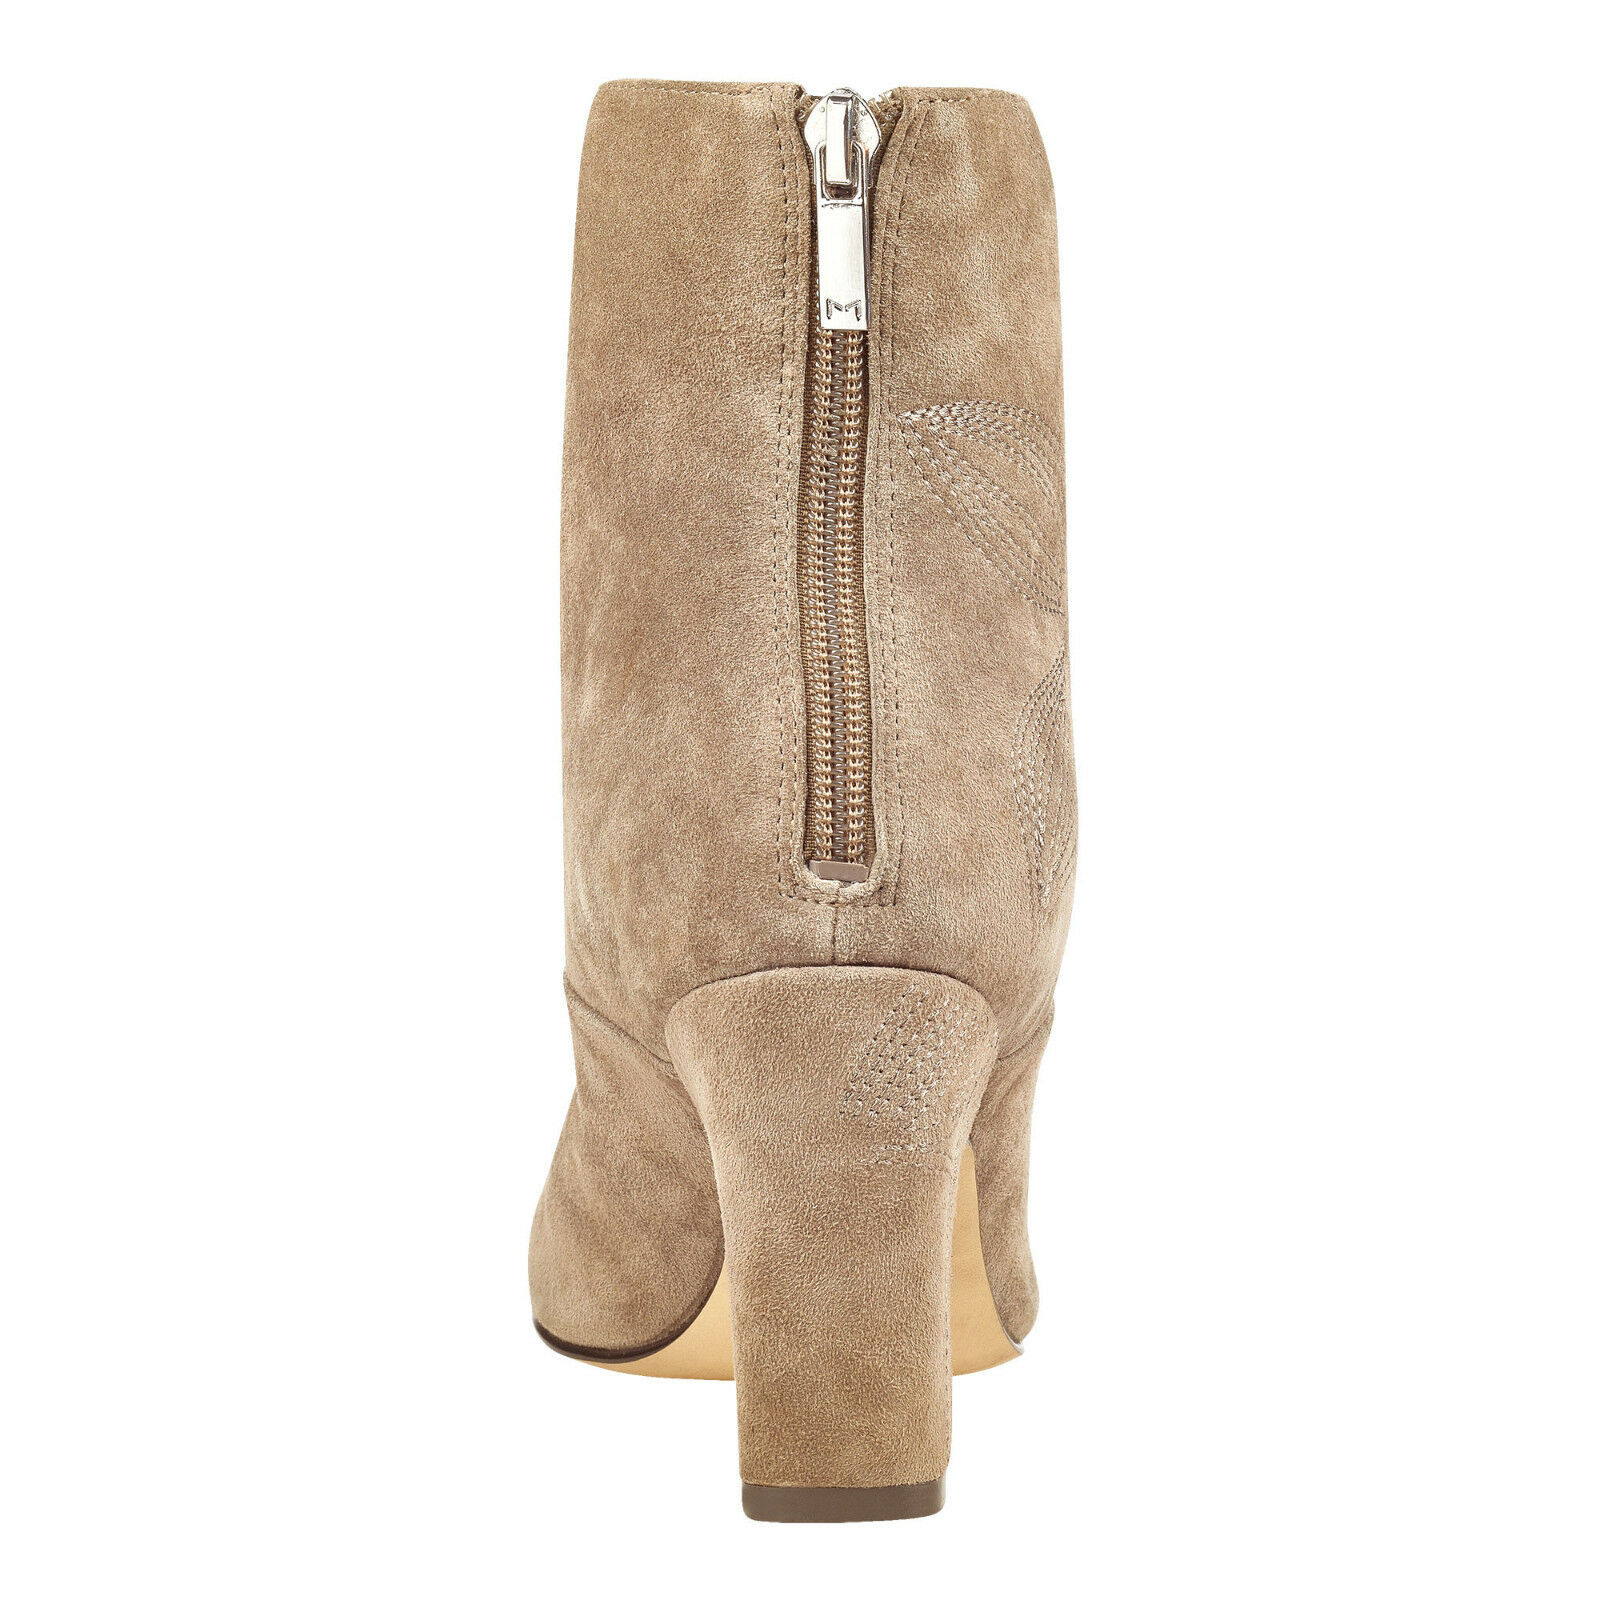 New New New In Box Womens Marc Fisher JOHNNY Taupe Suede Ankle Boots 865c52